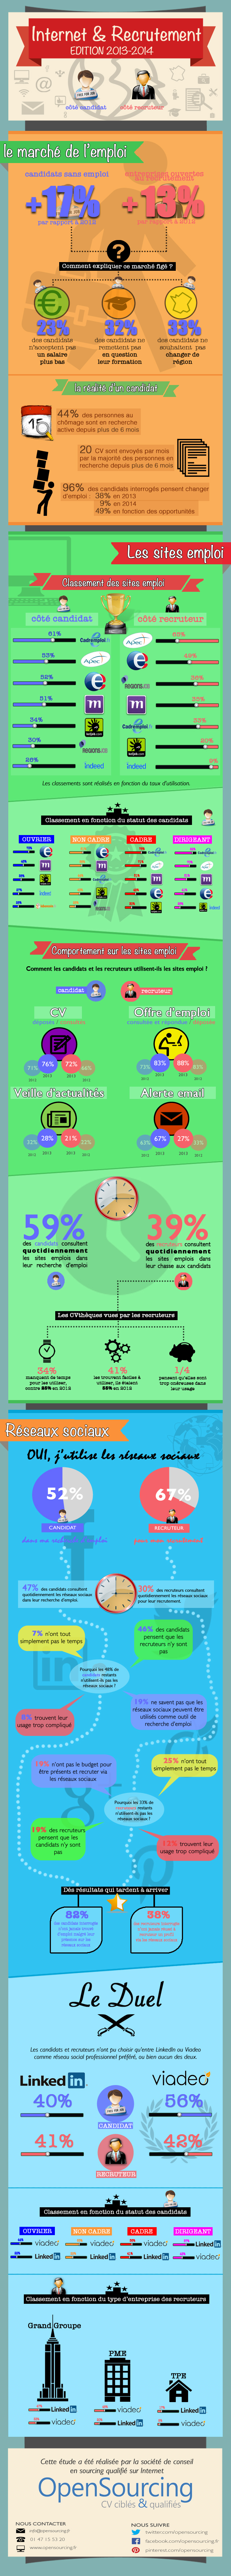 internet  u0026 recrutement 2014  infographie  by opensourcing